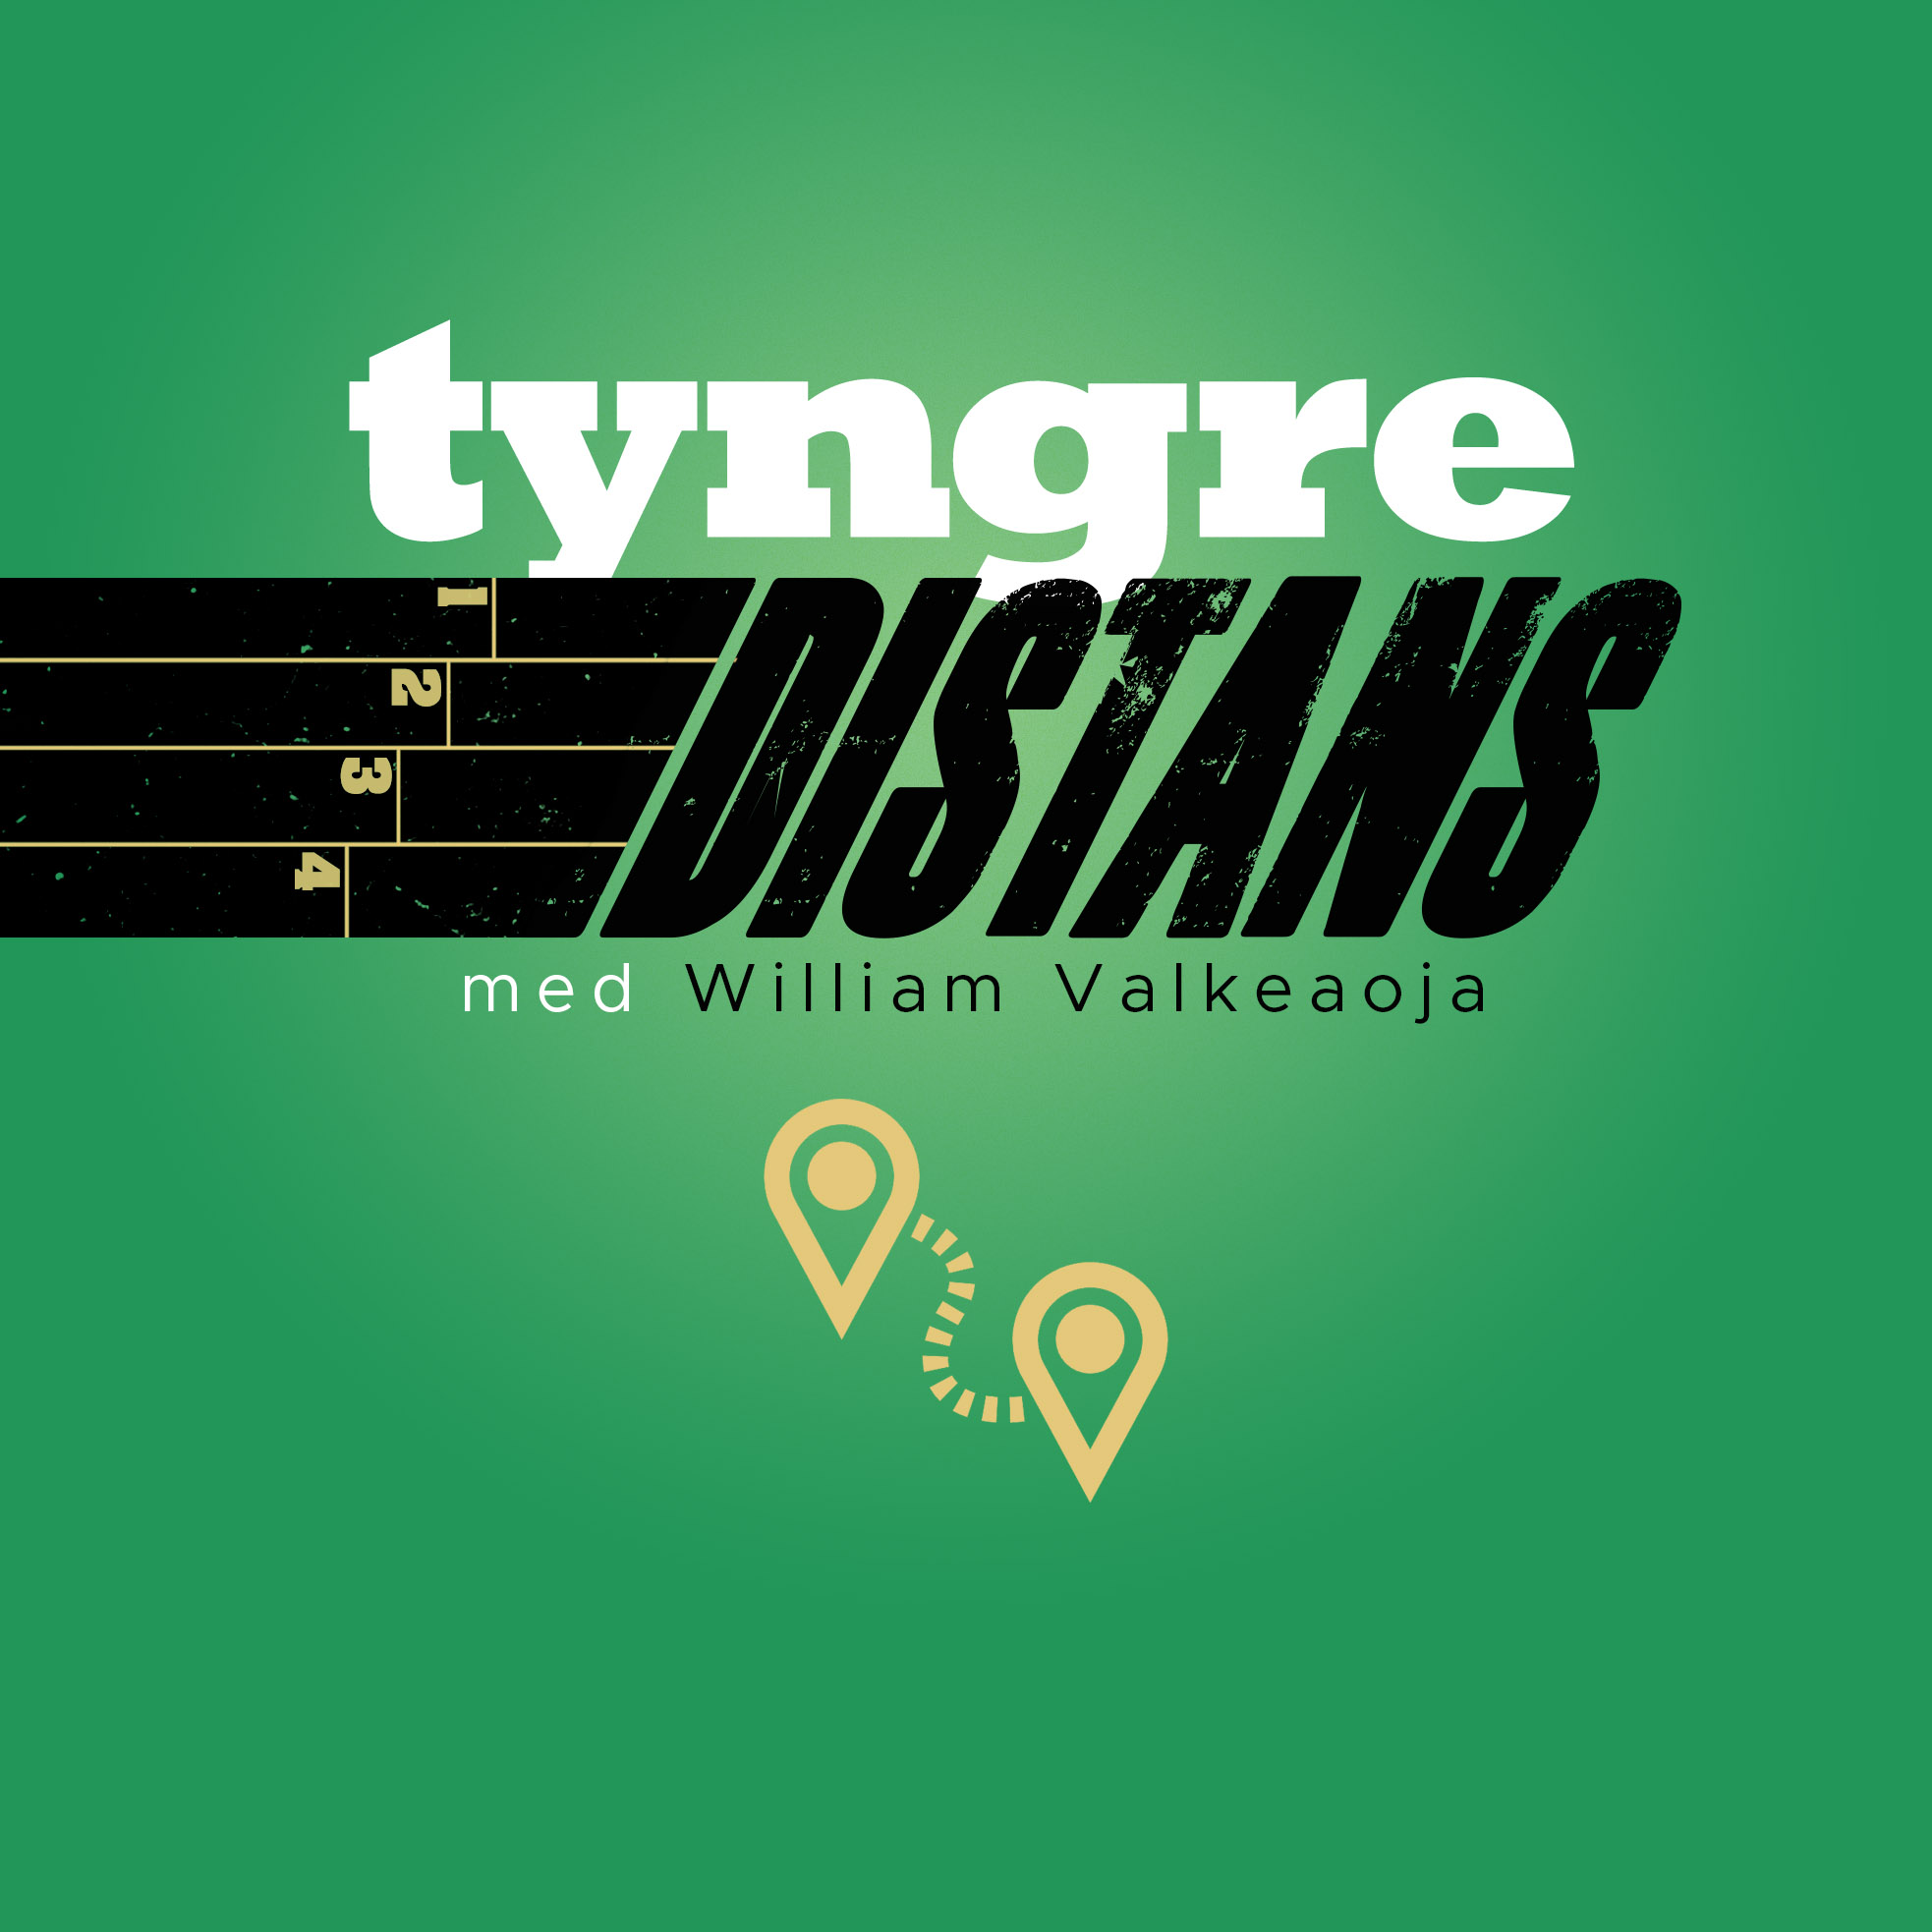 Tyngre Distans show image